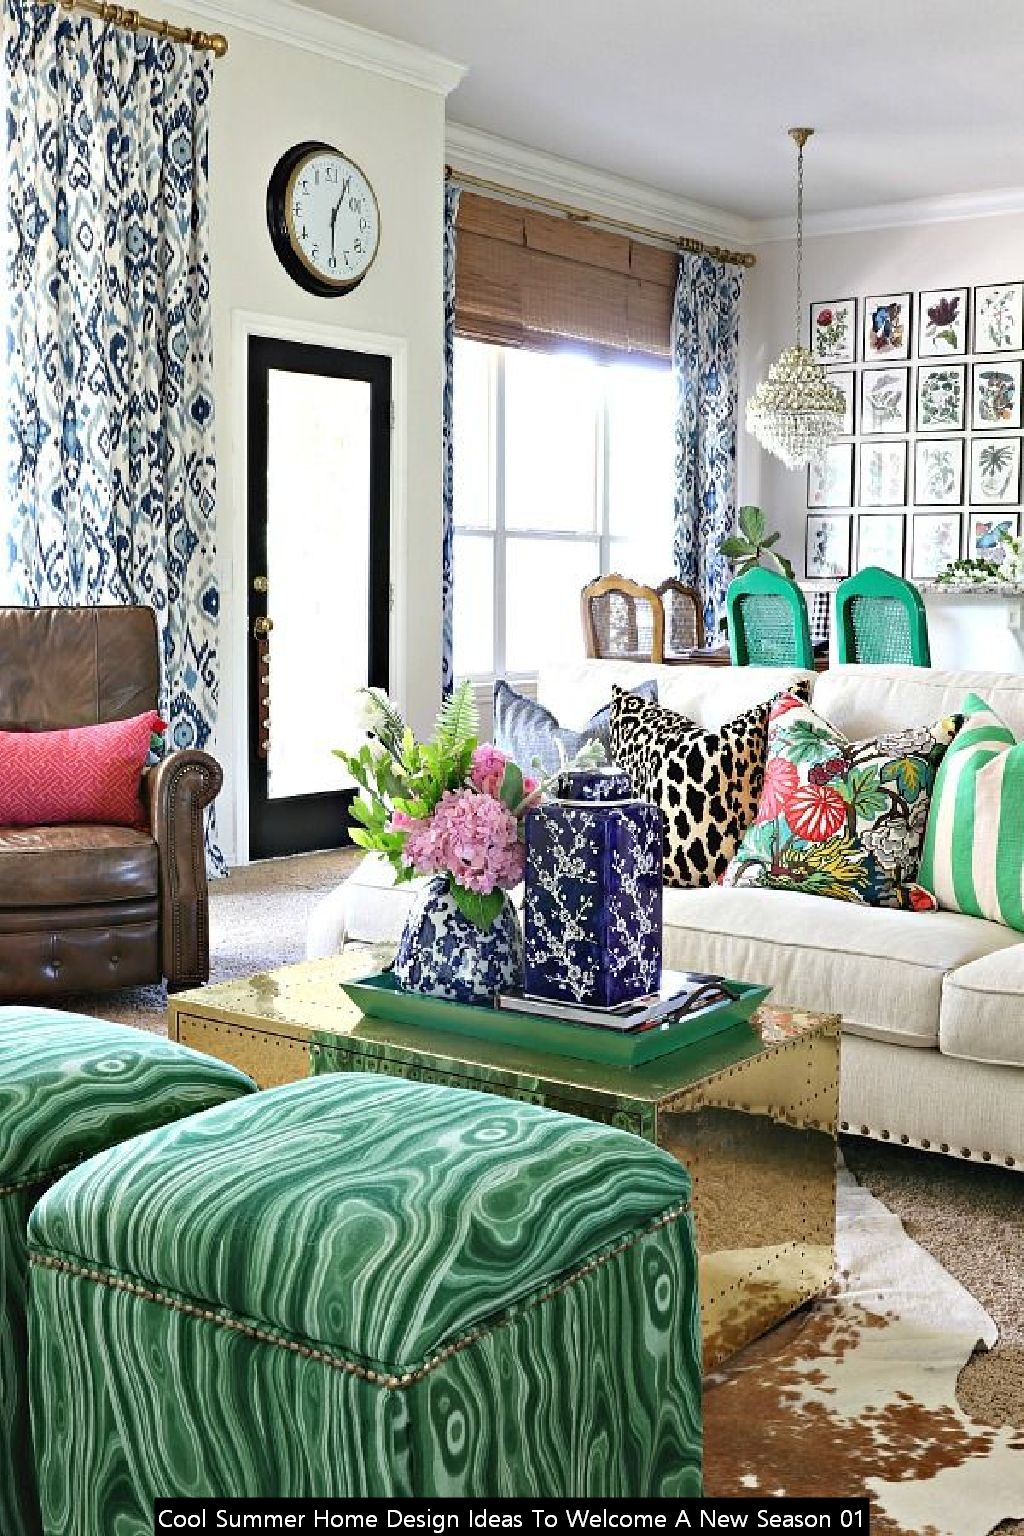 Cool Summer Home Design Ideas To Welcome A New Season 01